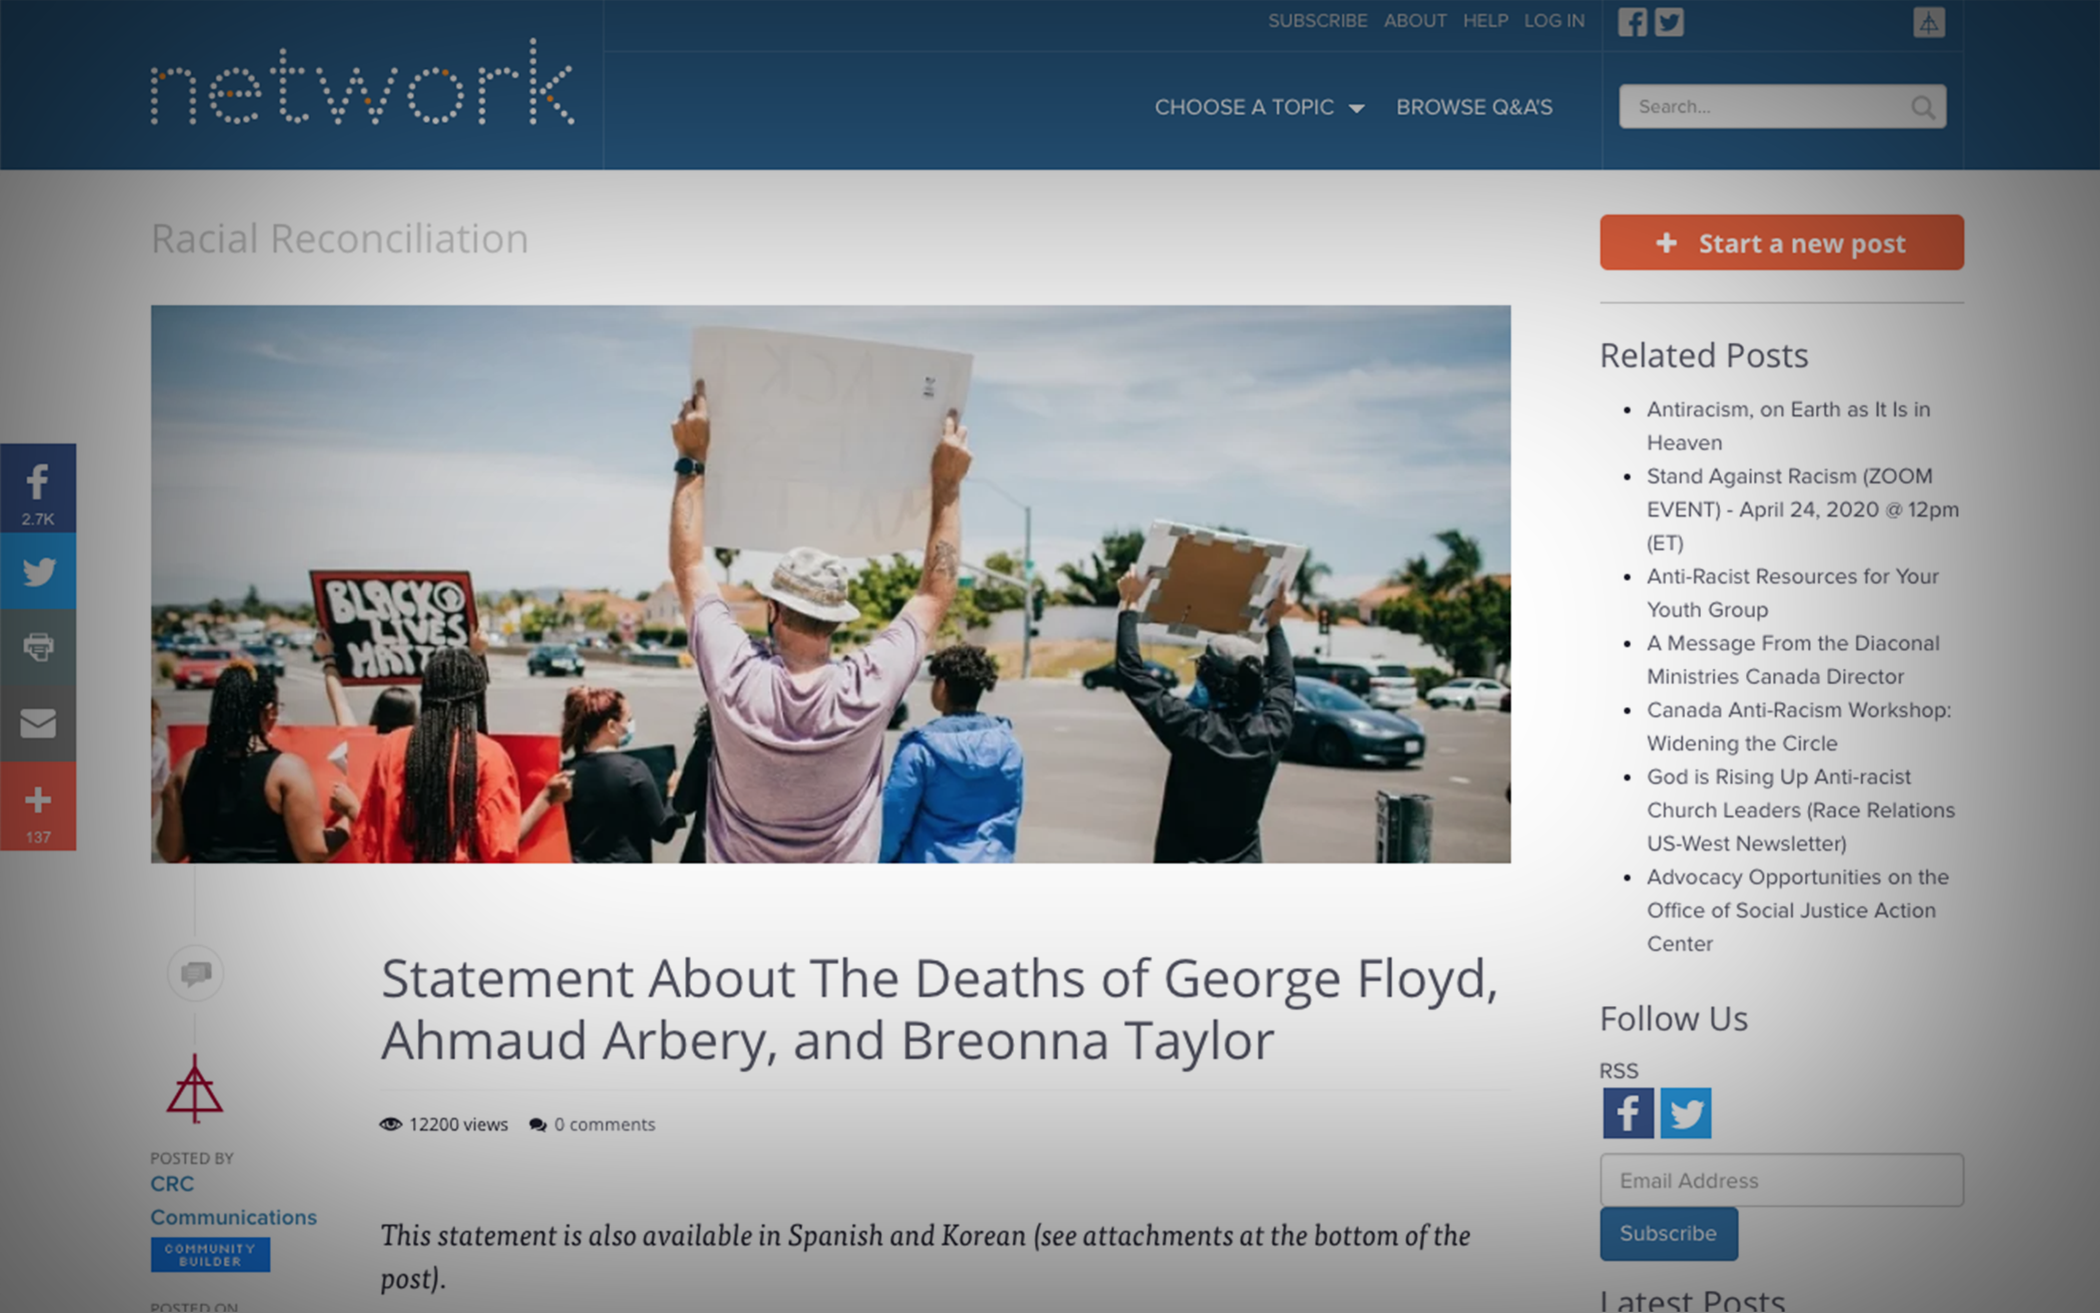 CRC Struggles to Respond to Racism Following Death of George Floyd